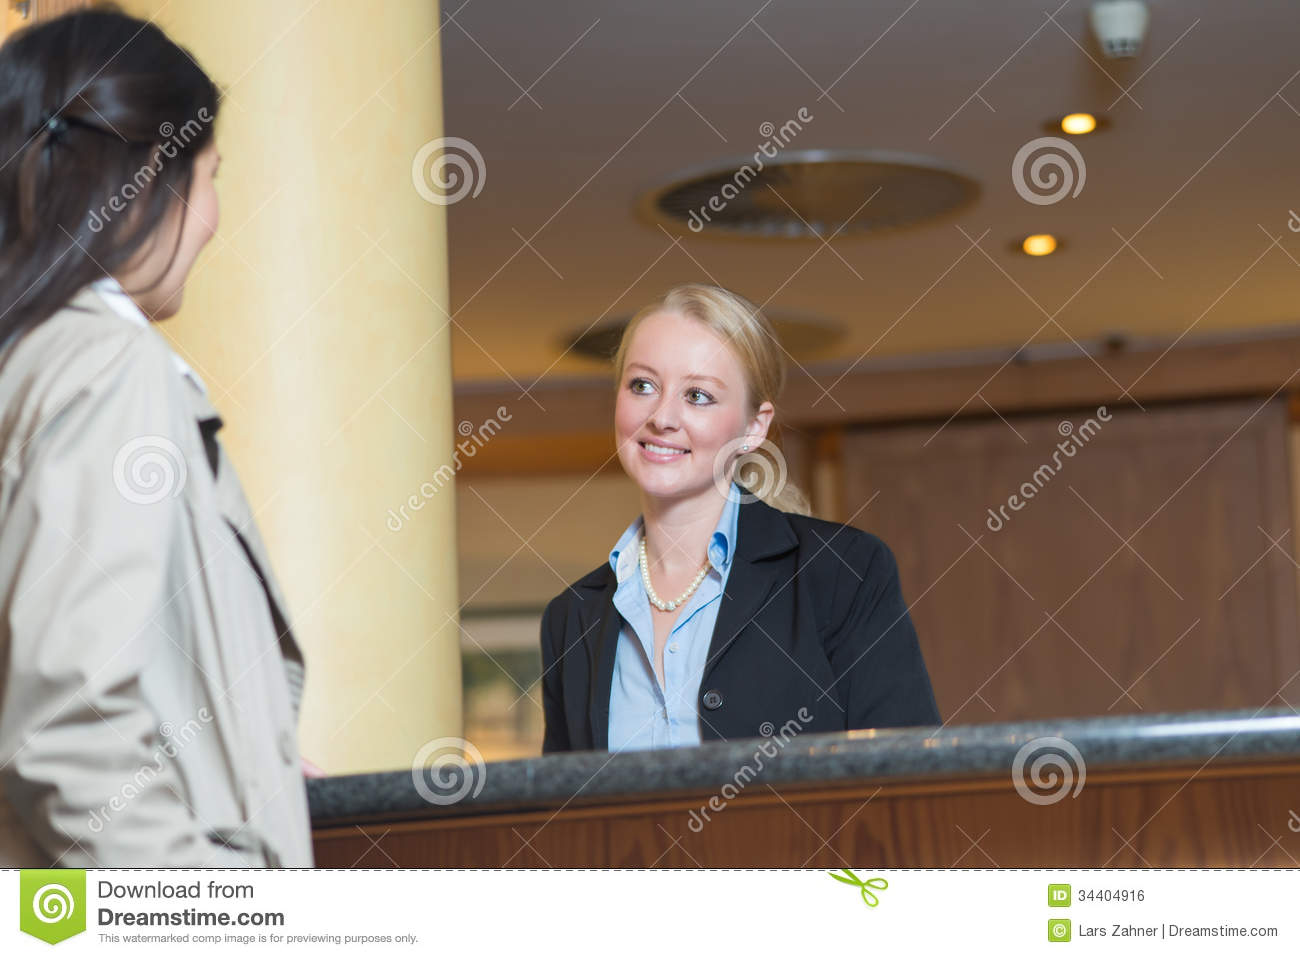 how to become hotel receptionist